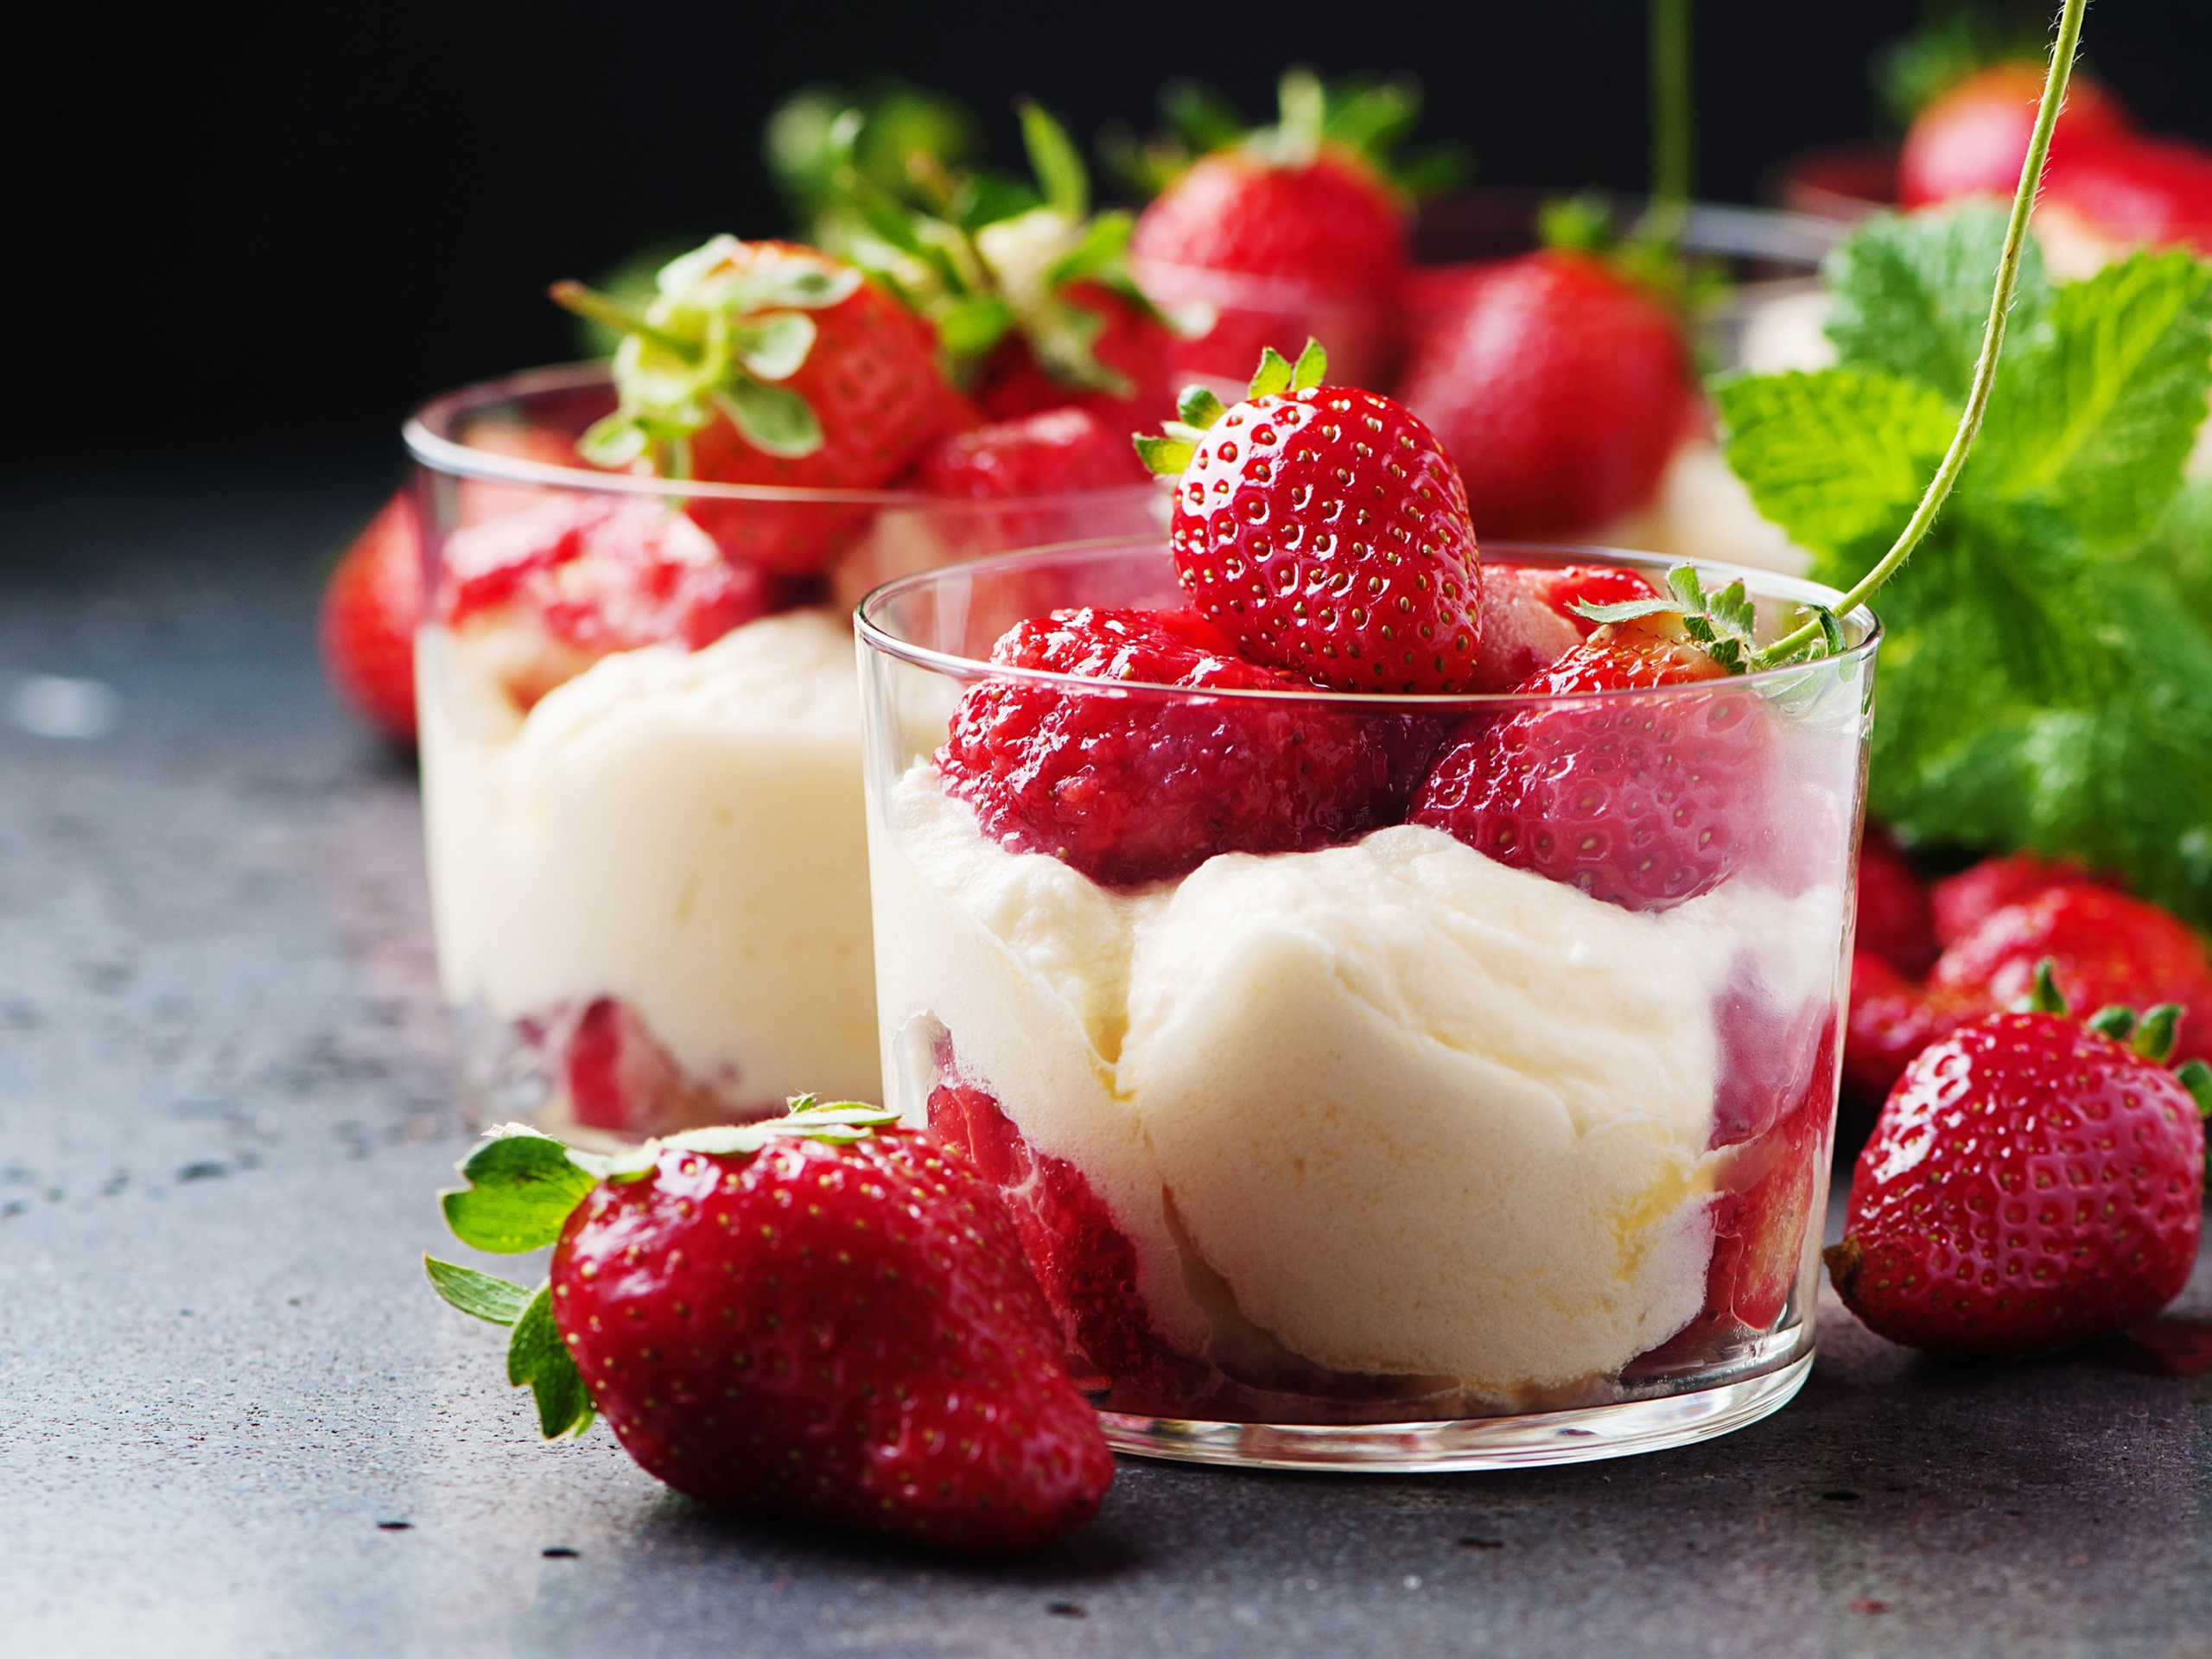 2560x1920 HD Wallpaper Strawberry, ice cream, mint, dessert